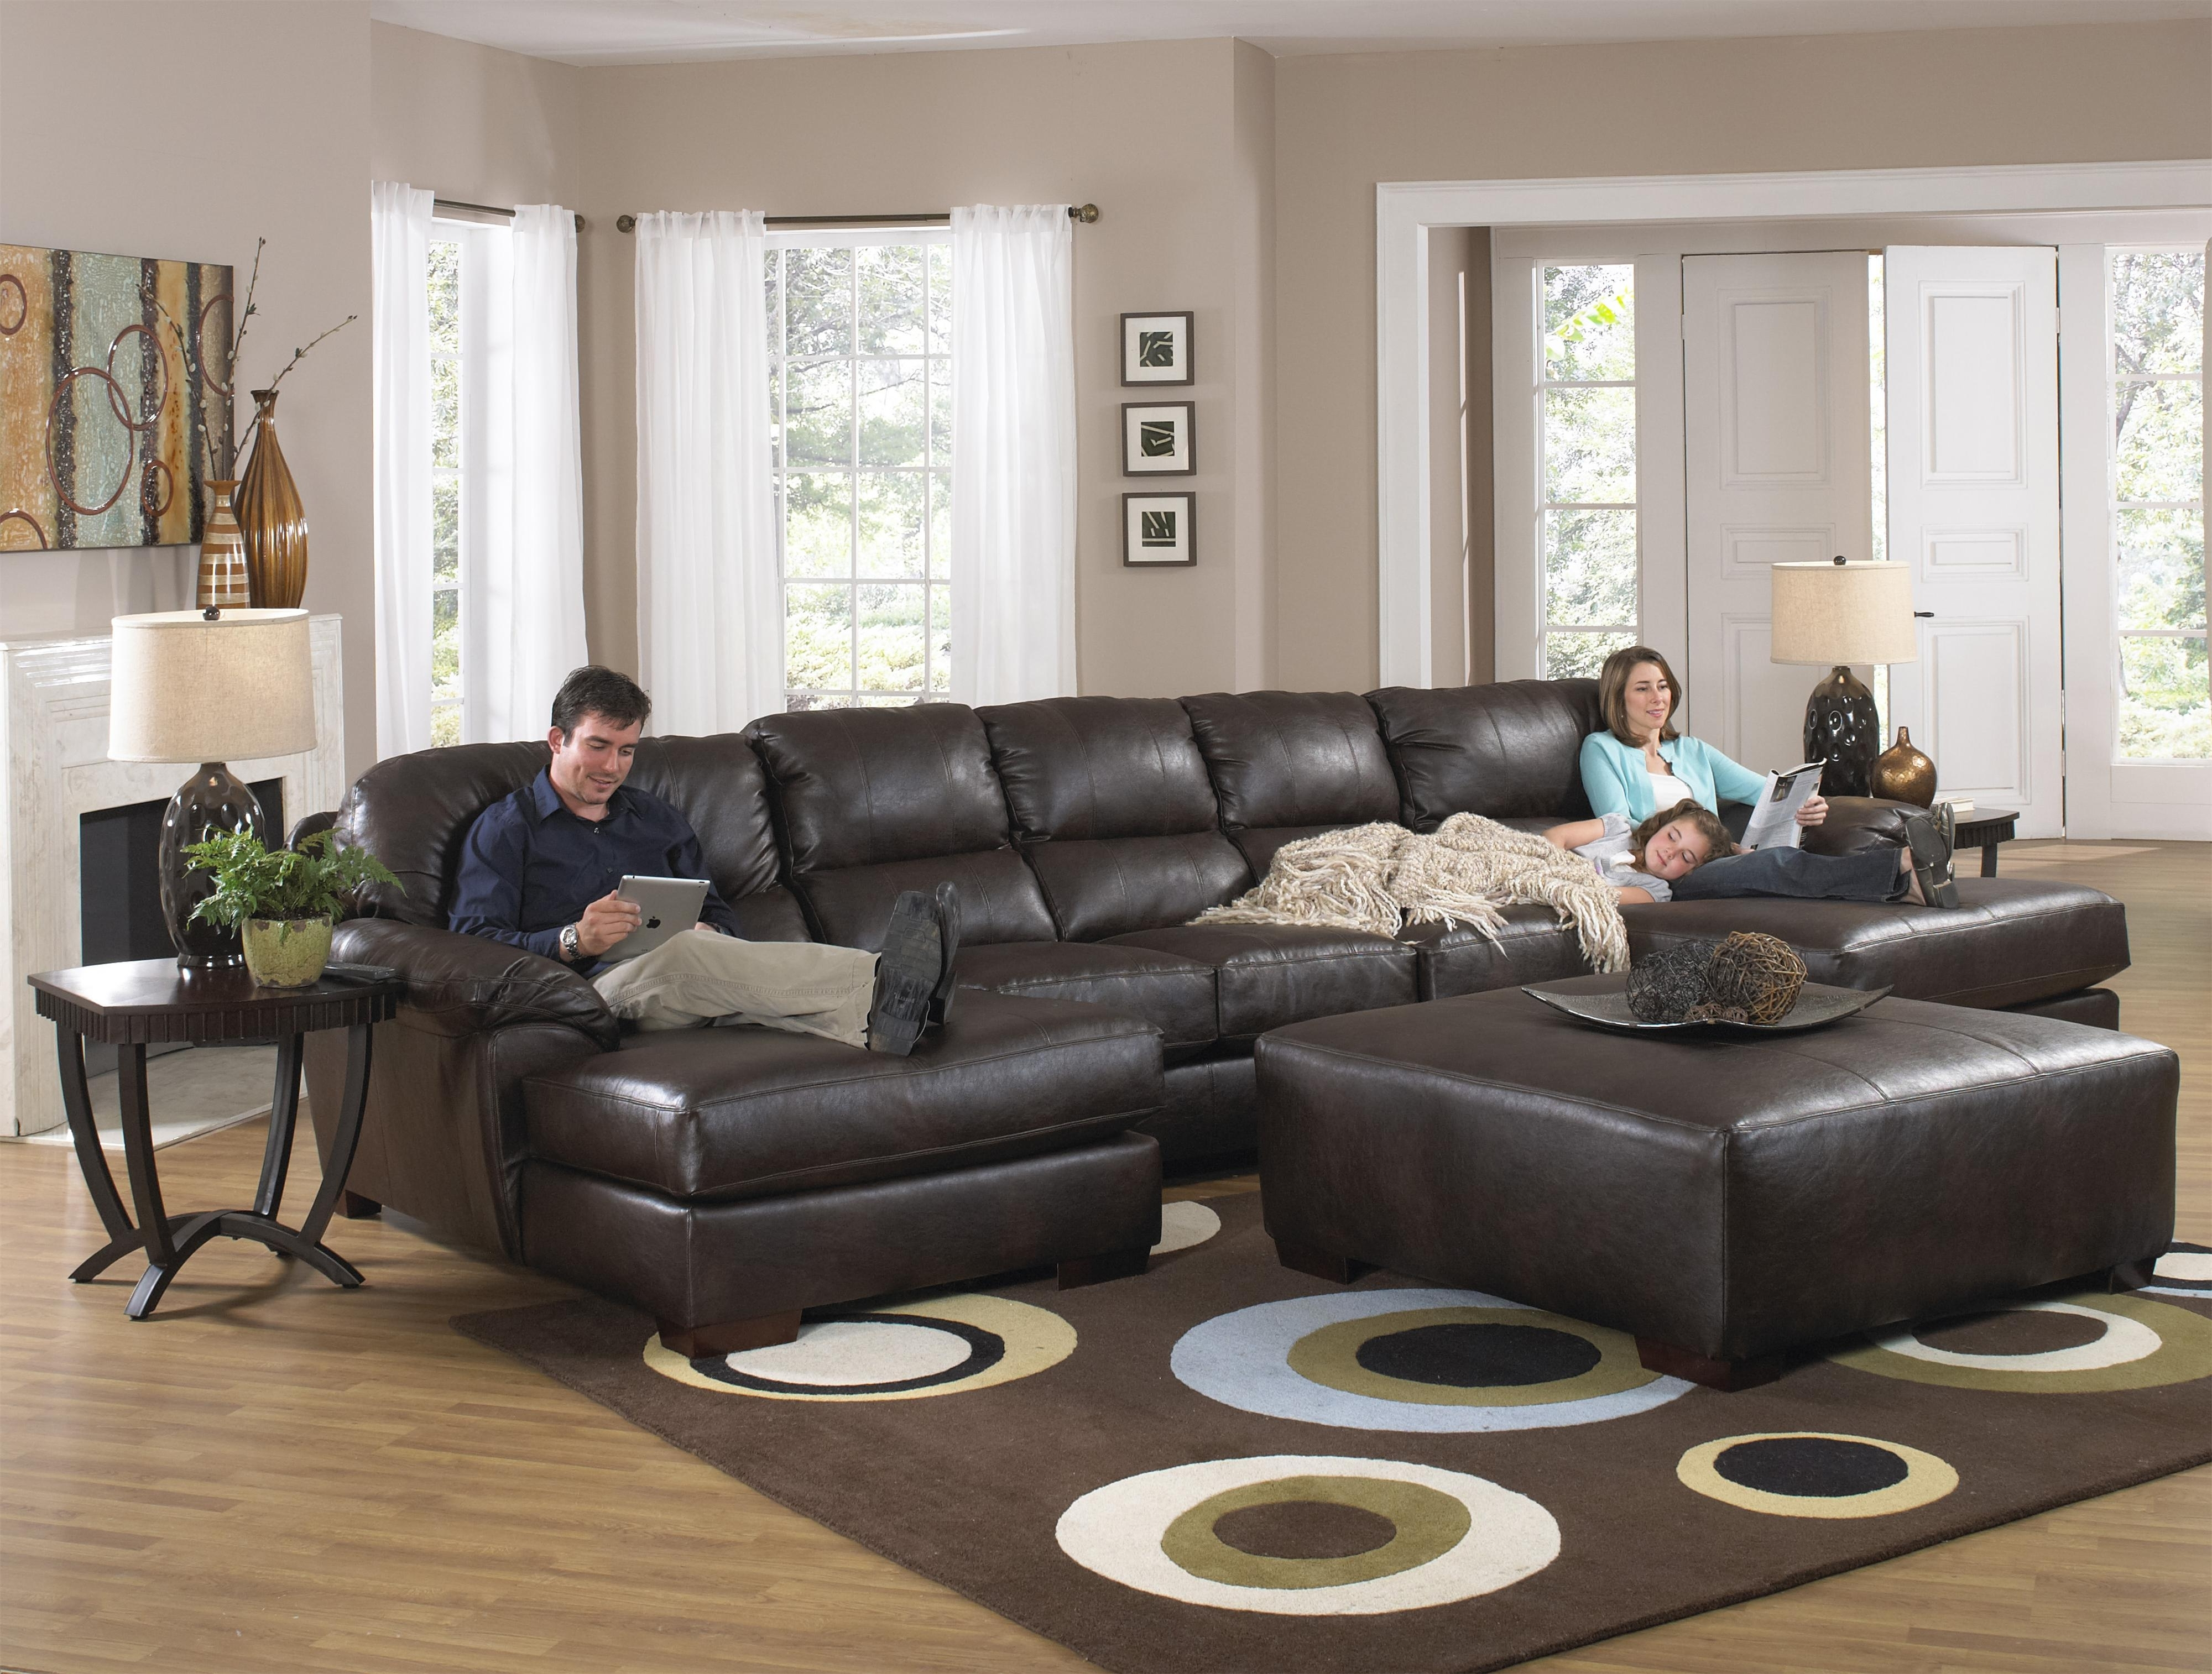 Dual Chaise Sectionals Inside Preferred Two Chaise Sectional Sofa With Five Total Seatsjackson (View 6 of 15)